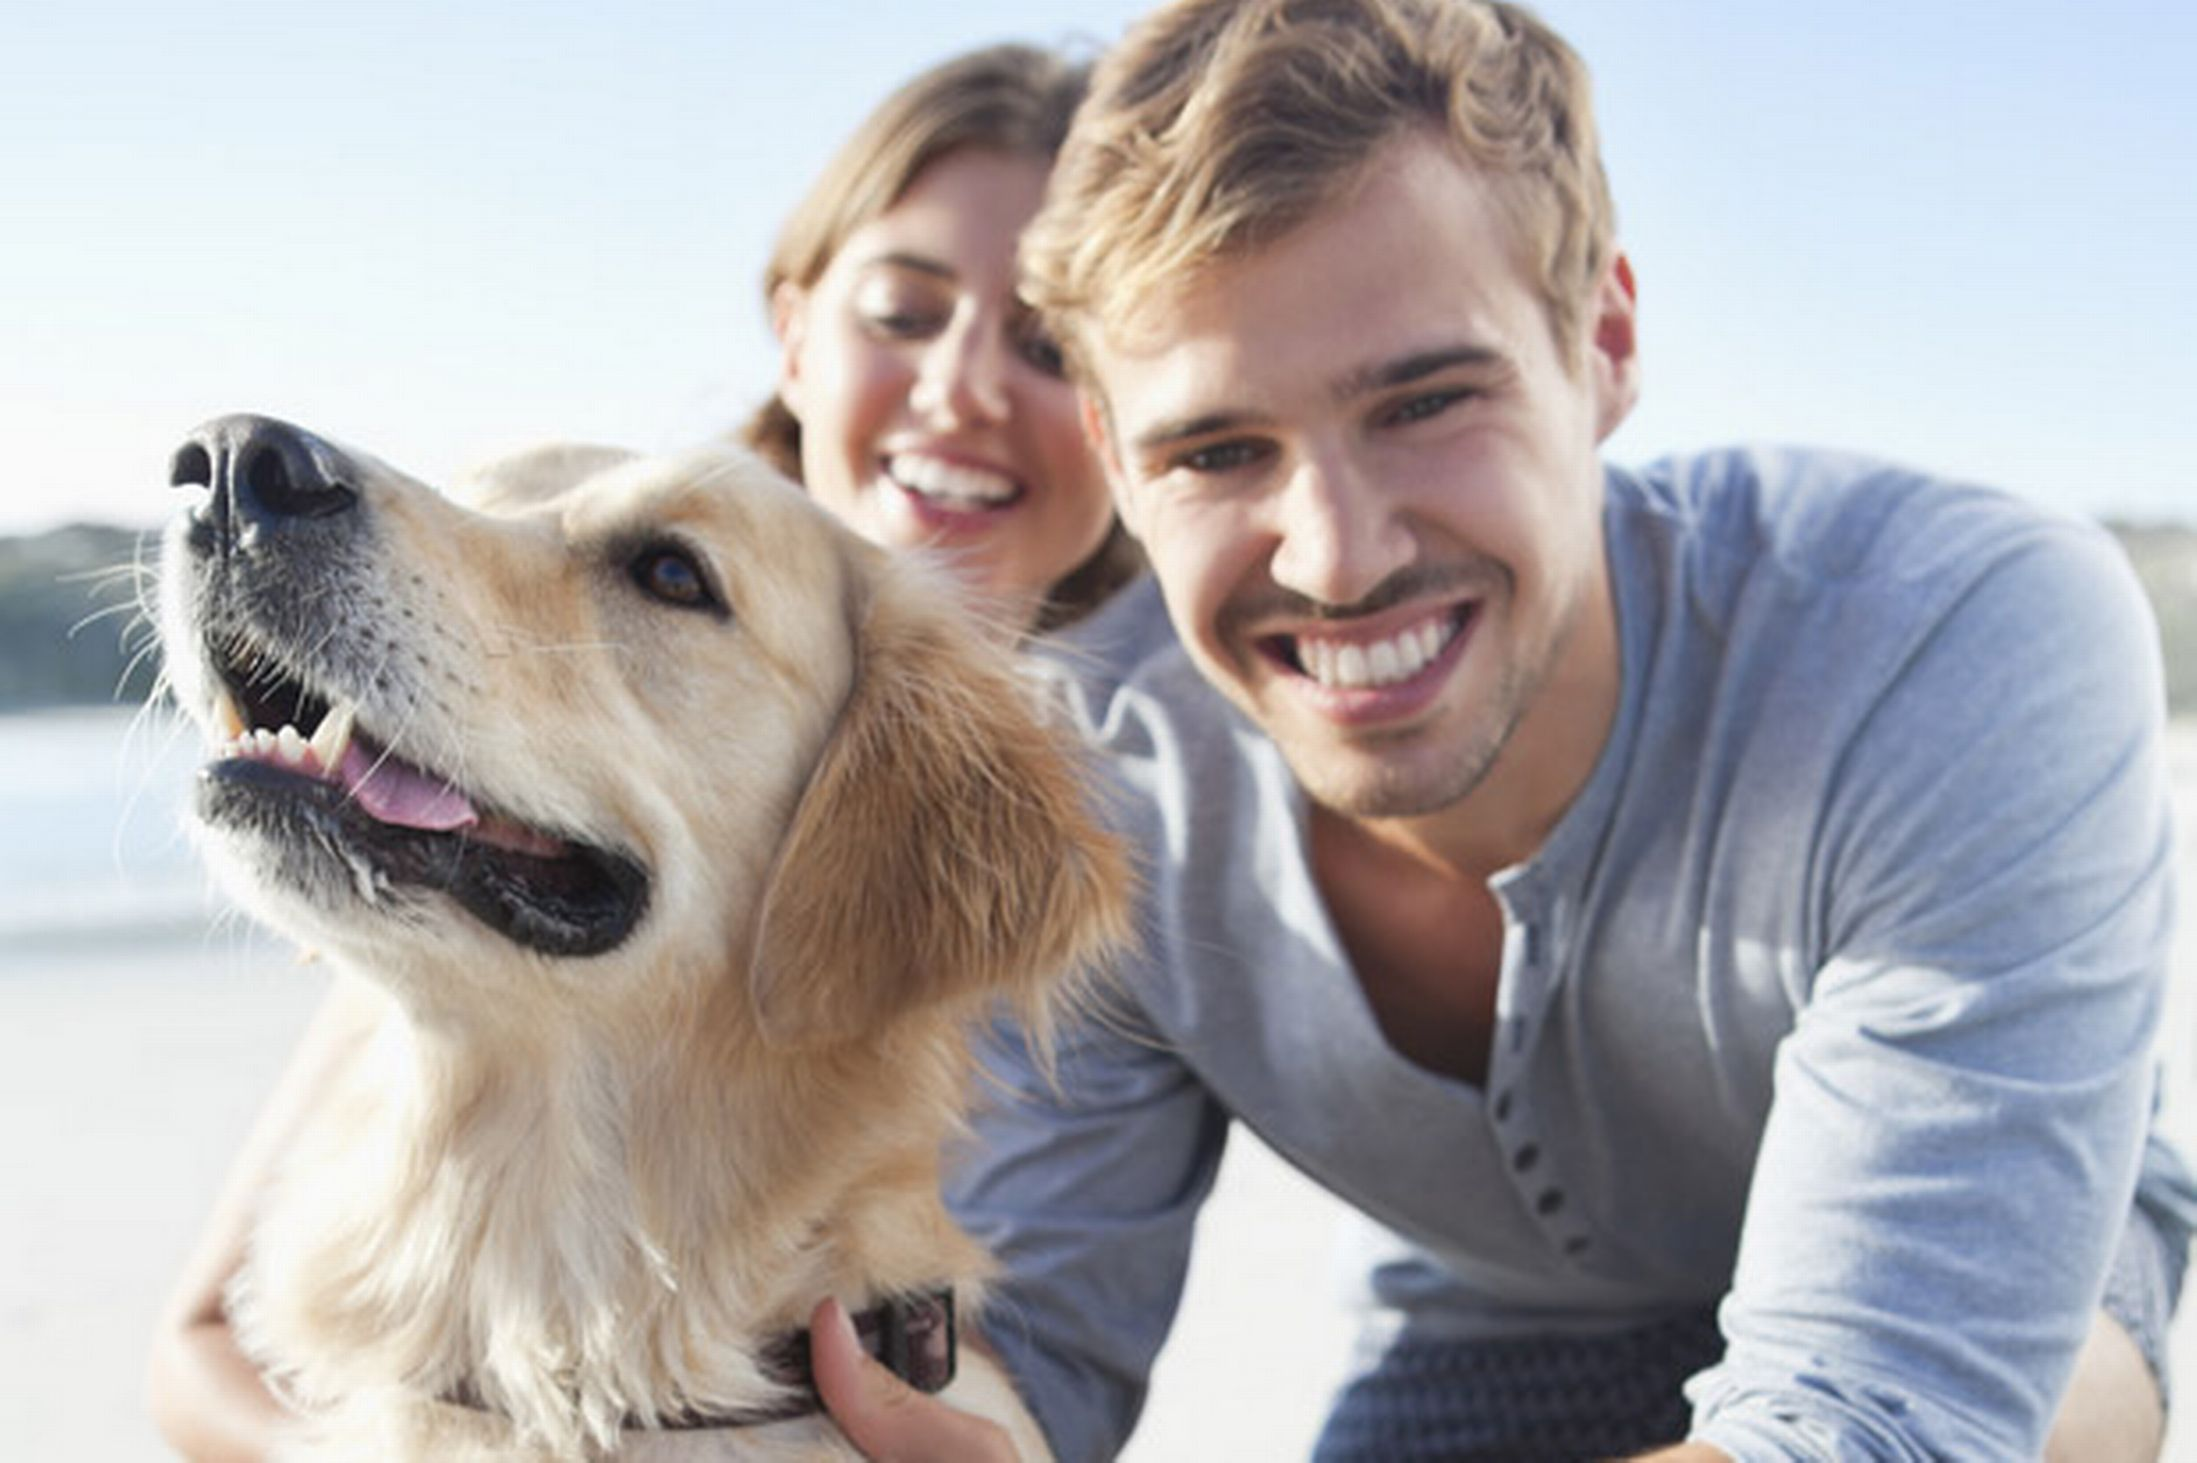 Smiling-young-couple-at-the-beach-with-pet-dog-775001